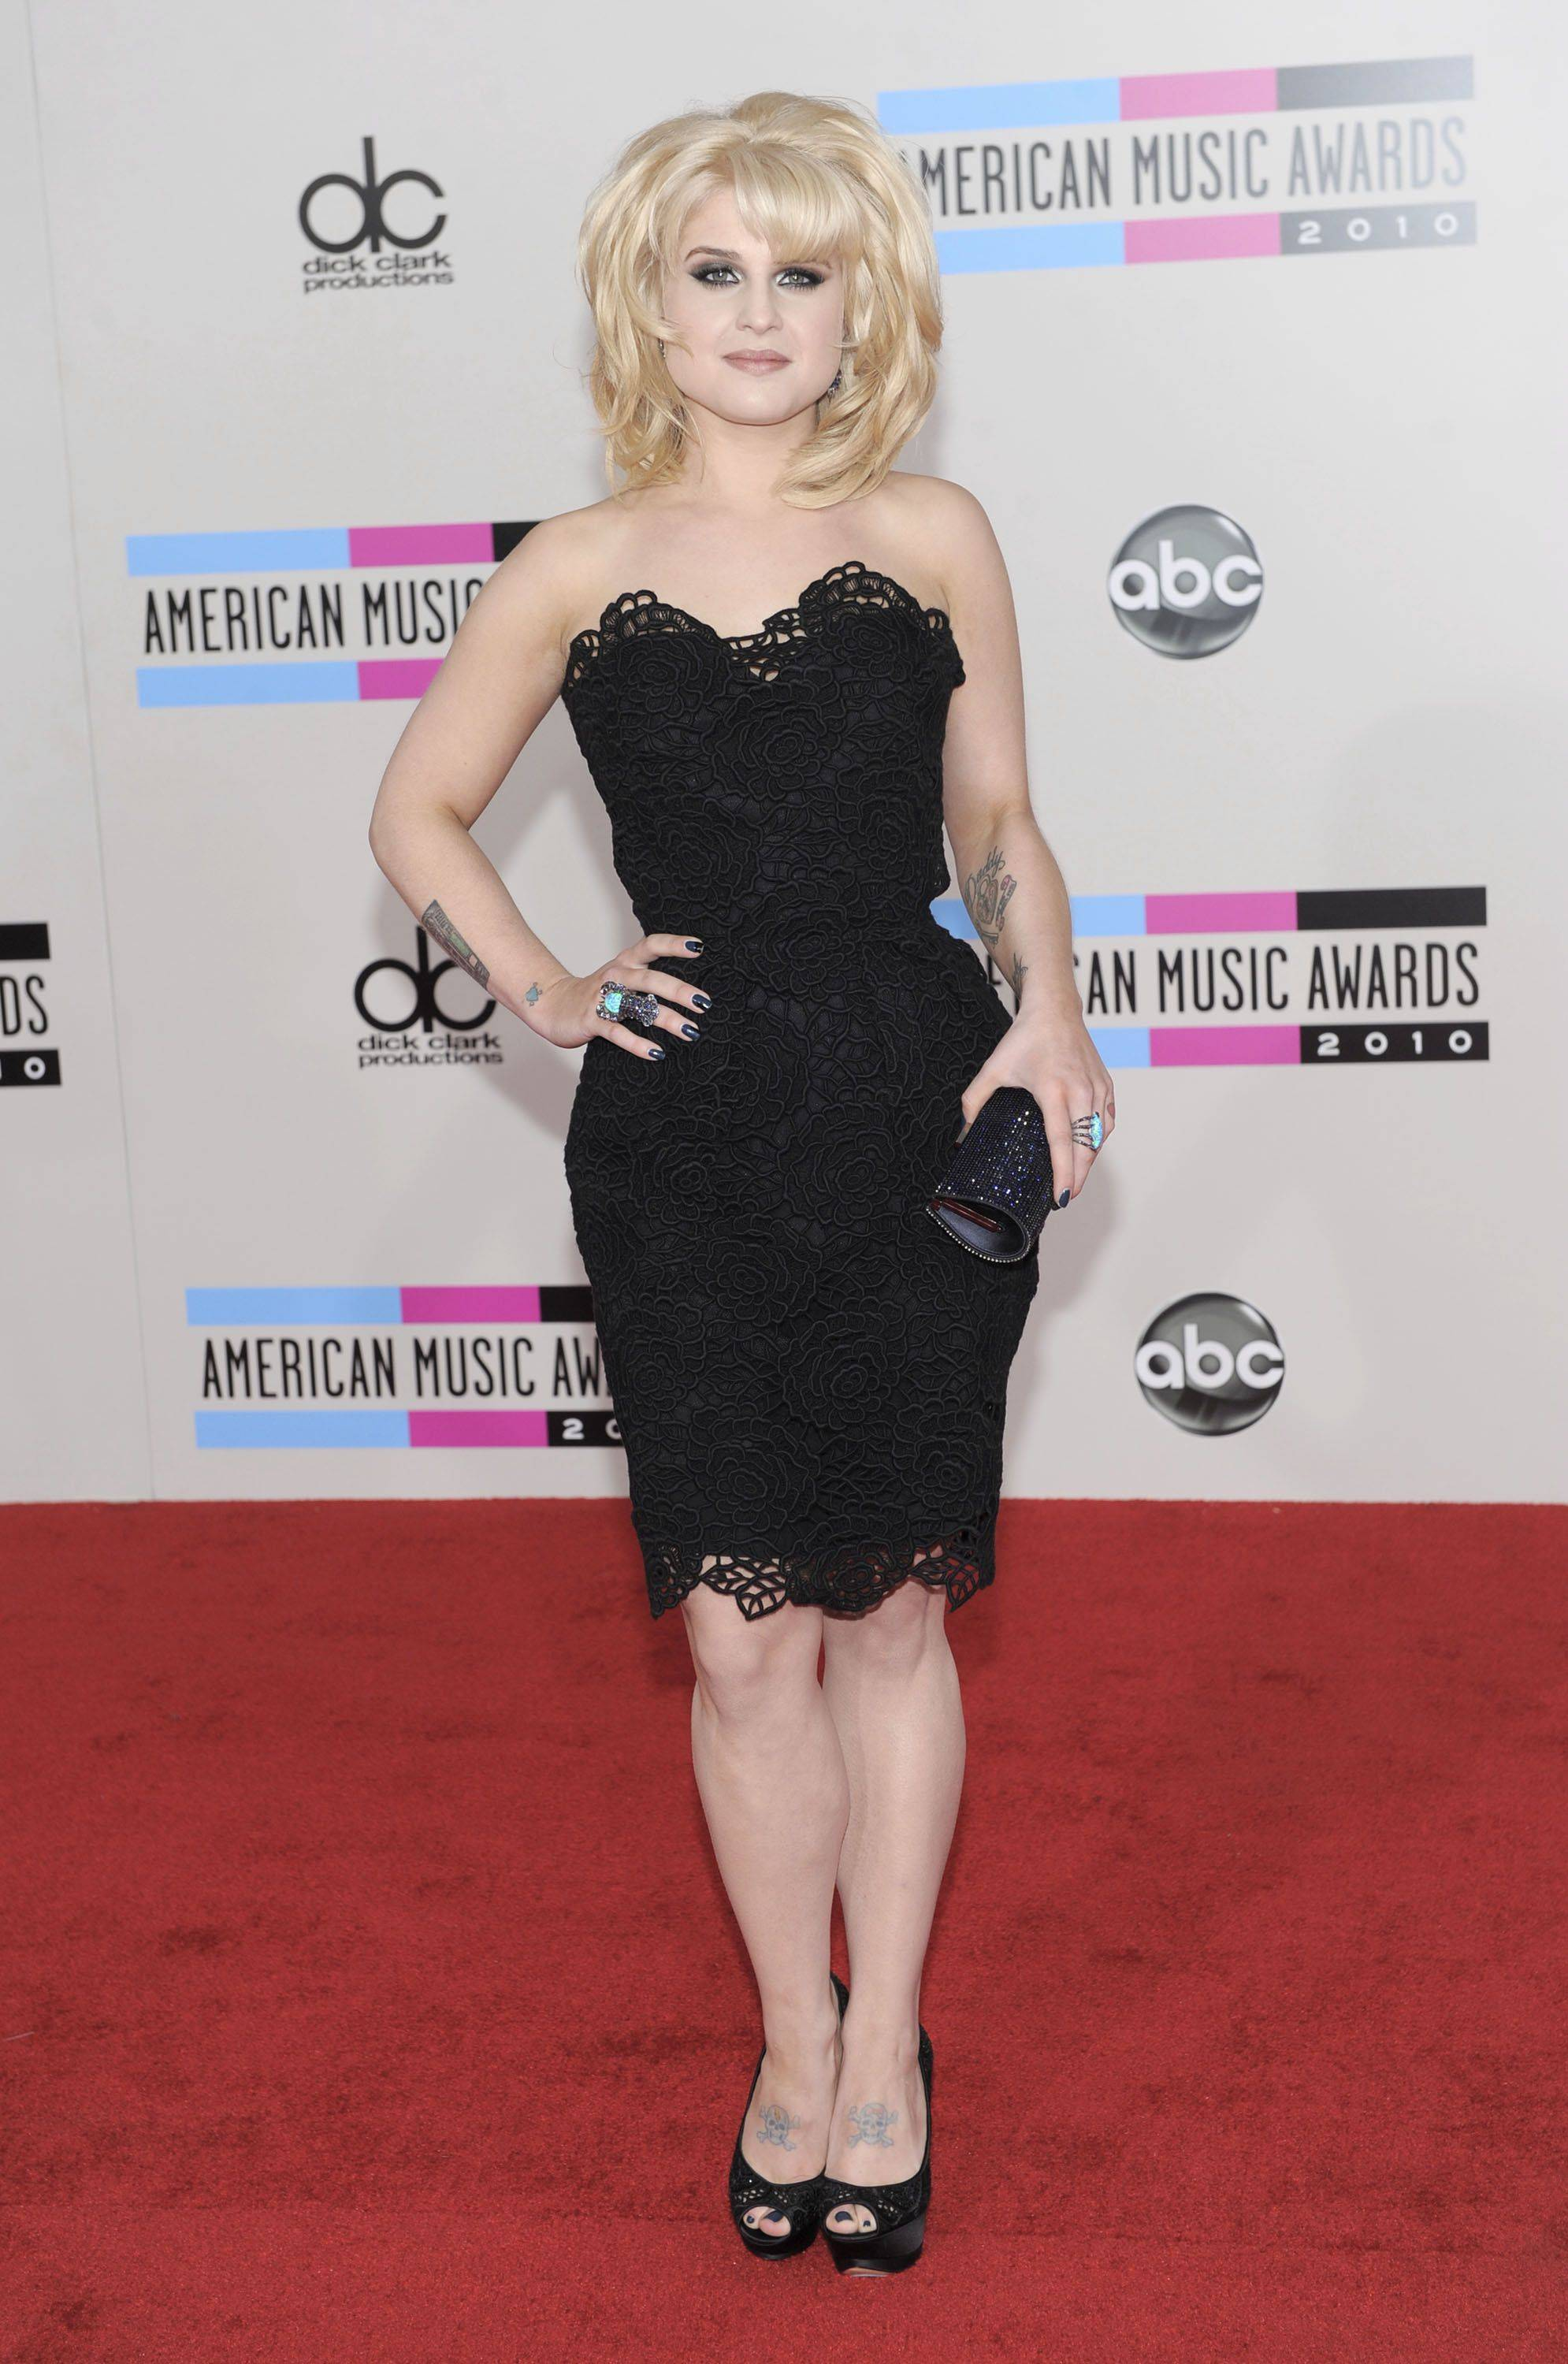 Kelly Osbourne arrives at the 38th Annual American Music Awards on Sunday, Nov. 21, 2010 in Los Angeles.